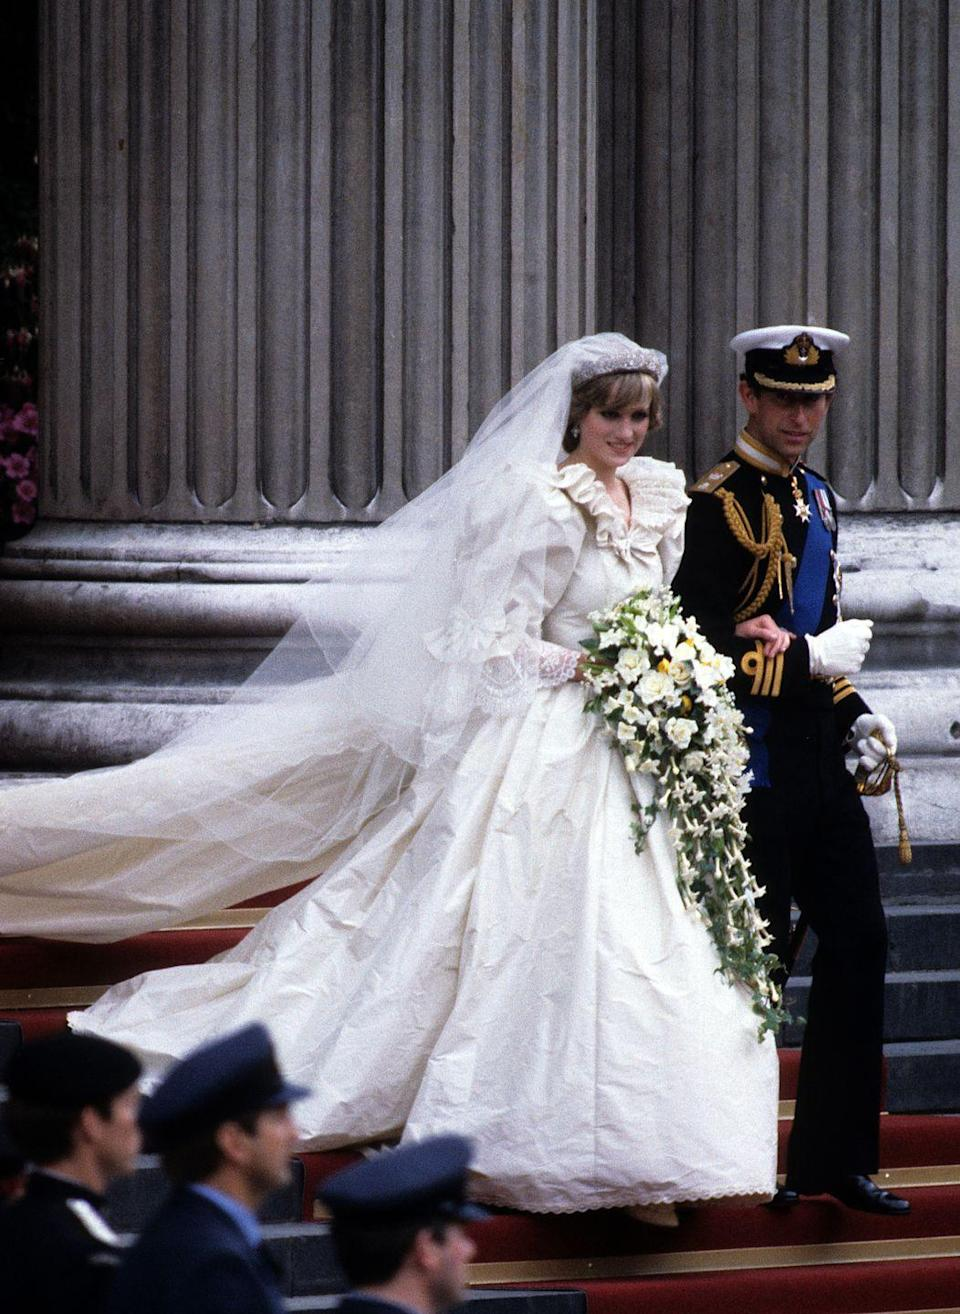 "<p>Princess Diana's show-stopping wedding dress had over 10,000 pearls and a <a href=""https://www.goodhousekeeping.com/beauty/fashion/g4655/princess-diana-wedding-dress/"" rel=""nofollow noopener"" target=""_blank"" data-ylk=""slk:25-foot wedding train"" class=""link rapid-noclick-resp"">25-foot wedding train</a>. Before her wedding started she actually spilled perfume on her gown, but Diana's team managed to hide it so no one noticed.</p>"